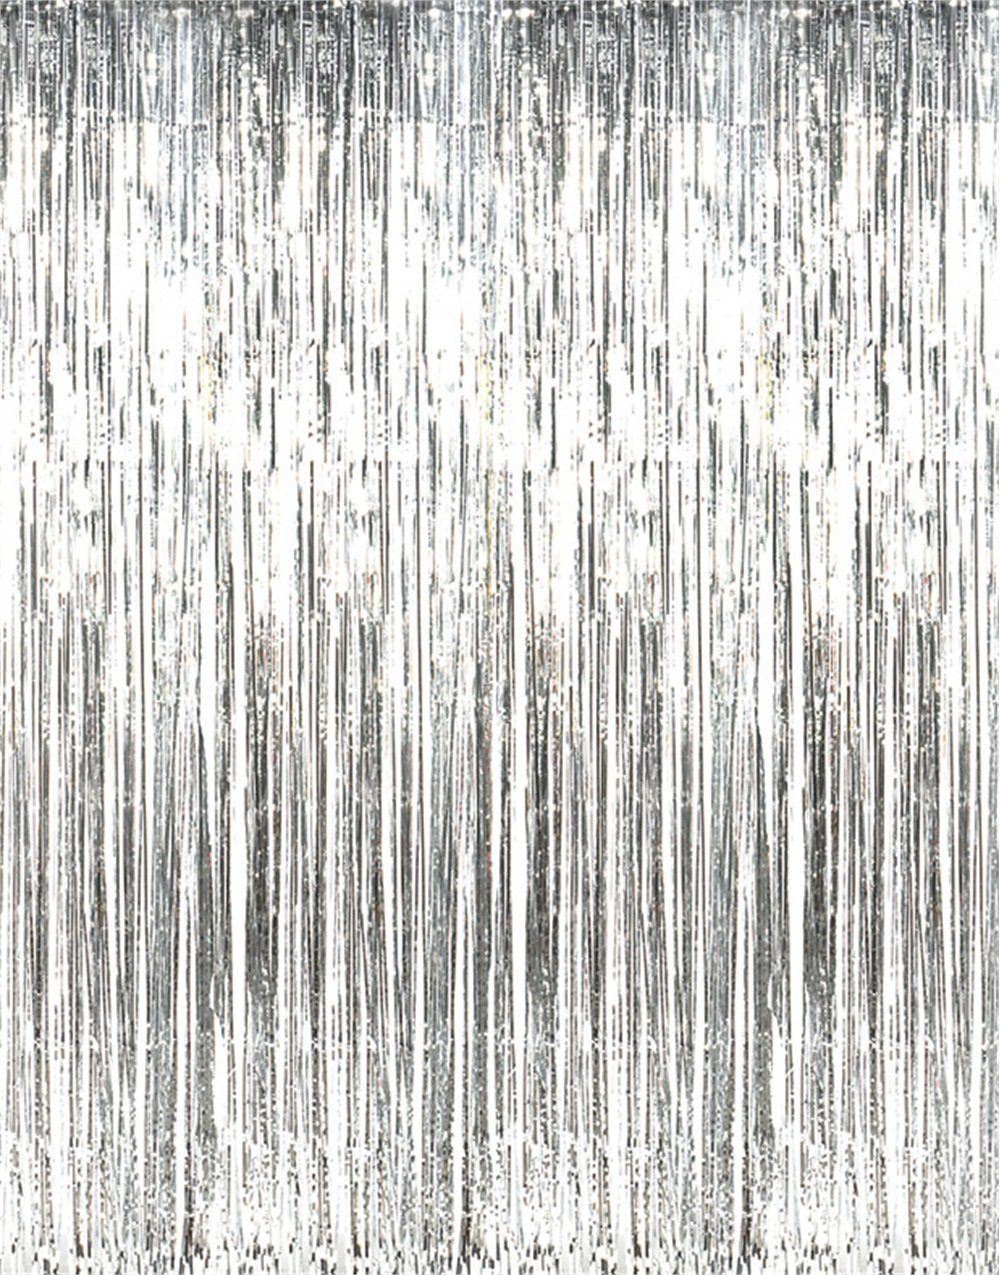 GOER 3.2 ft x 9.8 ft Metallic Tinsel Foil Fringe Curtains for Party Photo Backdrop Wedding Decor (Silver,5 pcs)